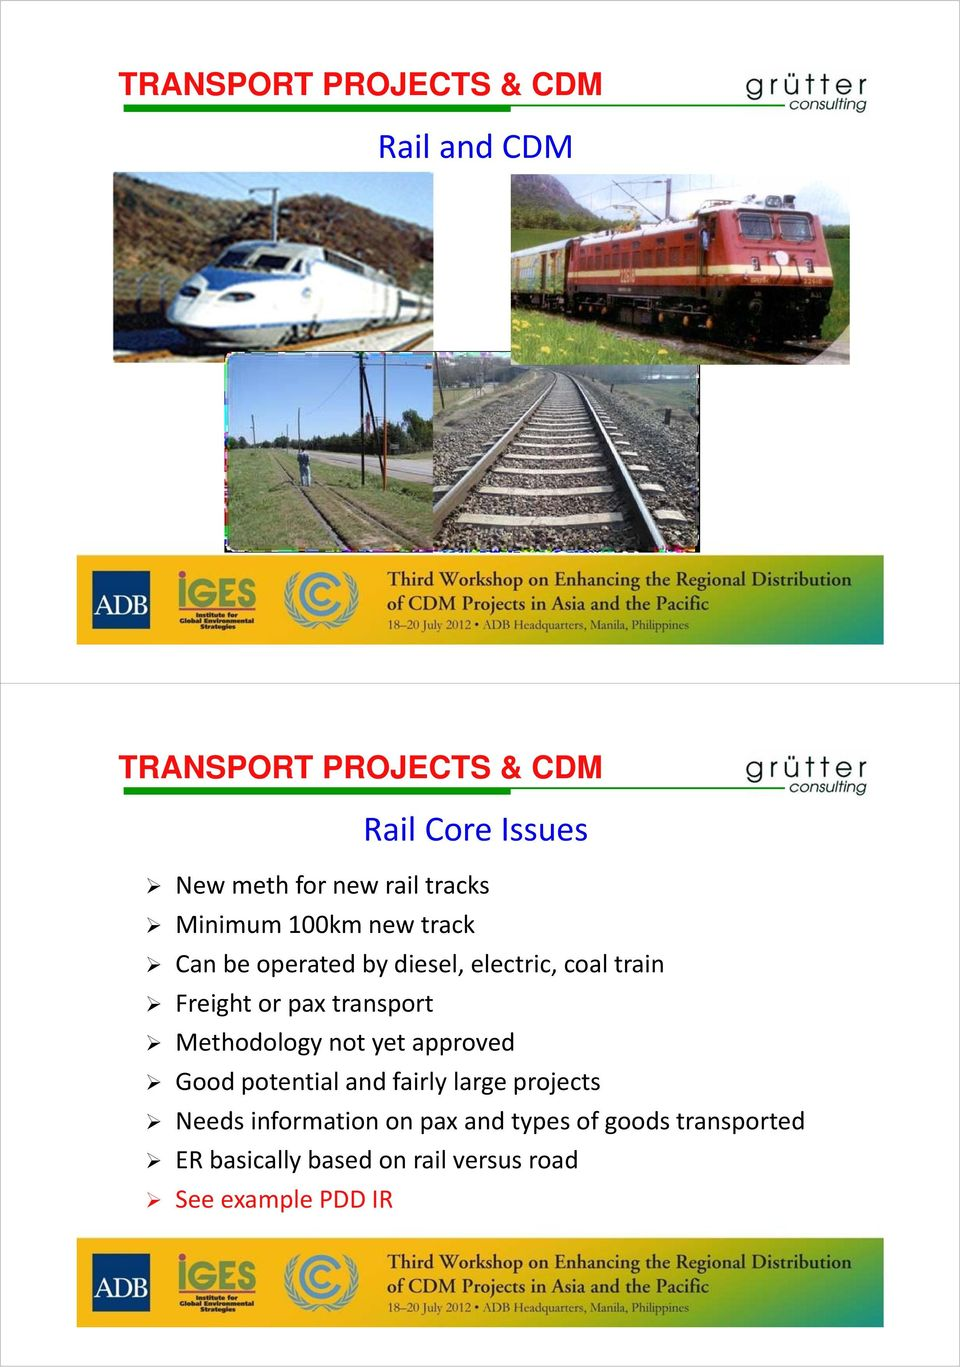 pax transport Methodology not yet approved Good potential and fairly large projects Needs